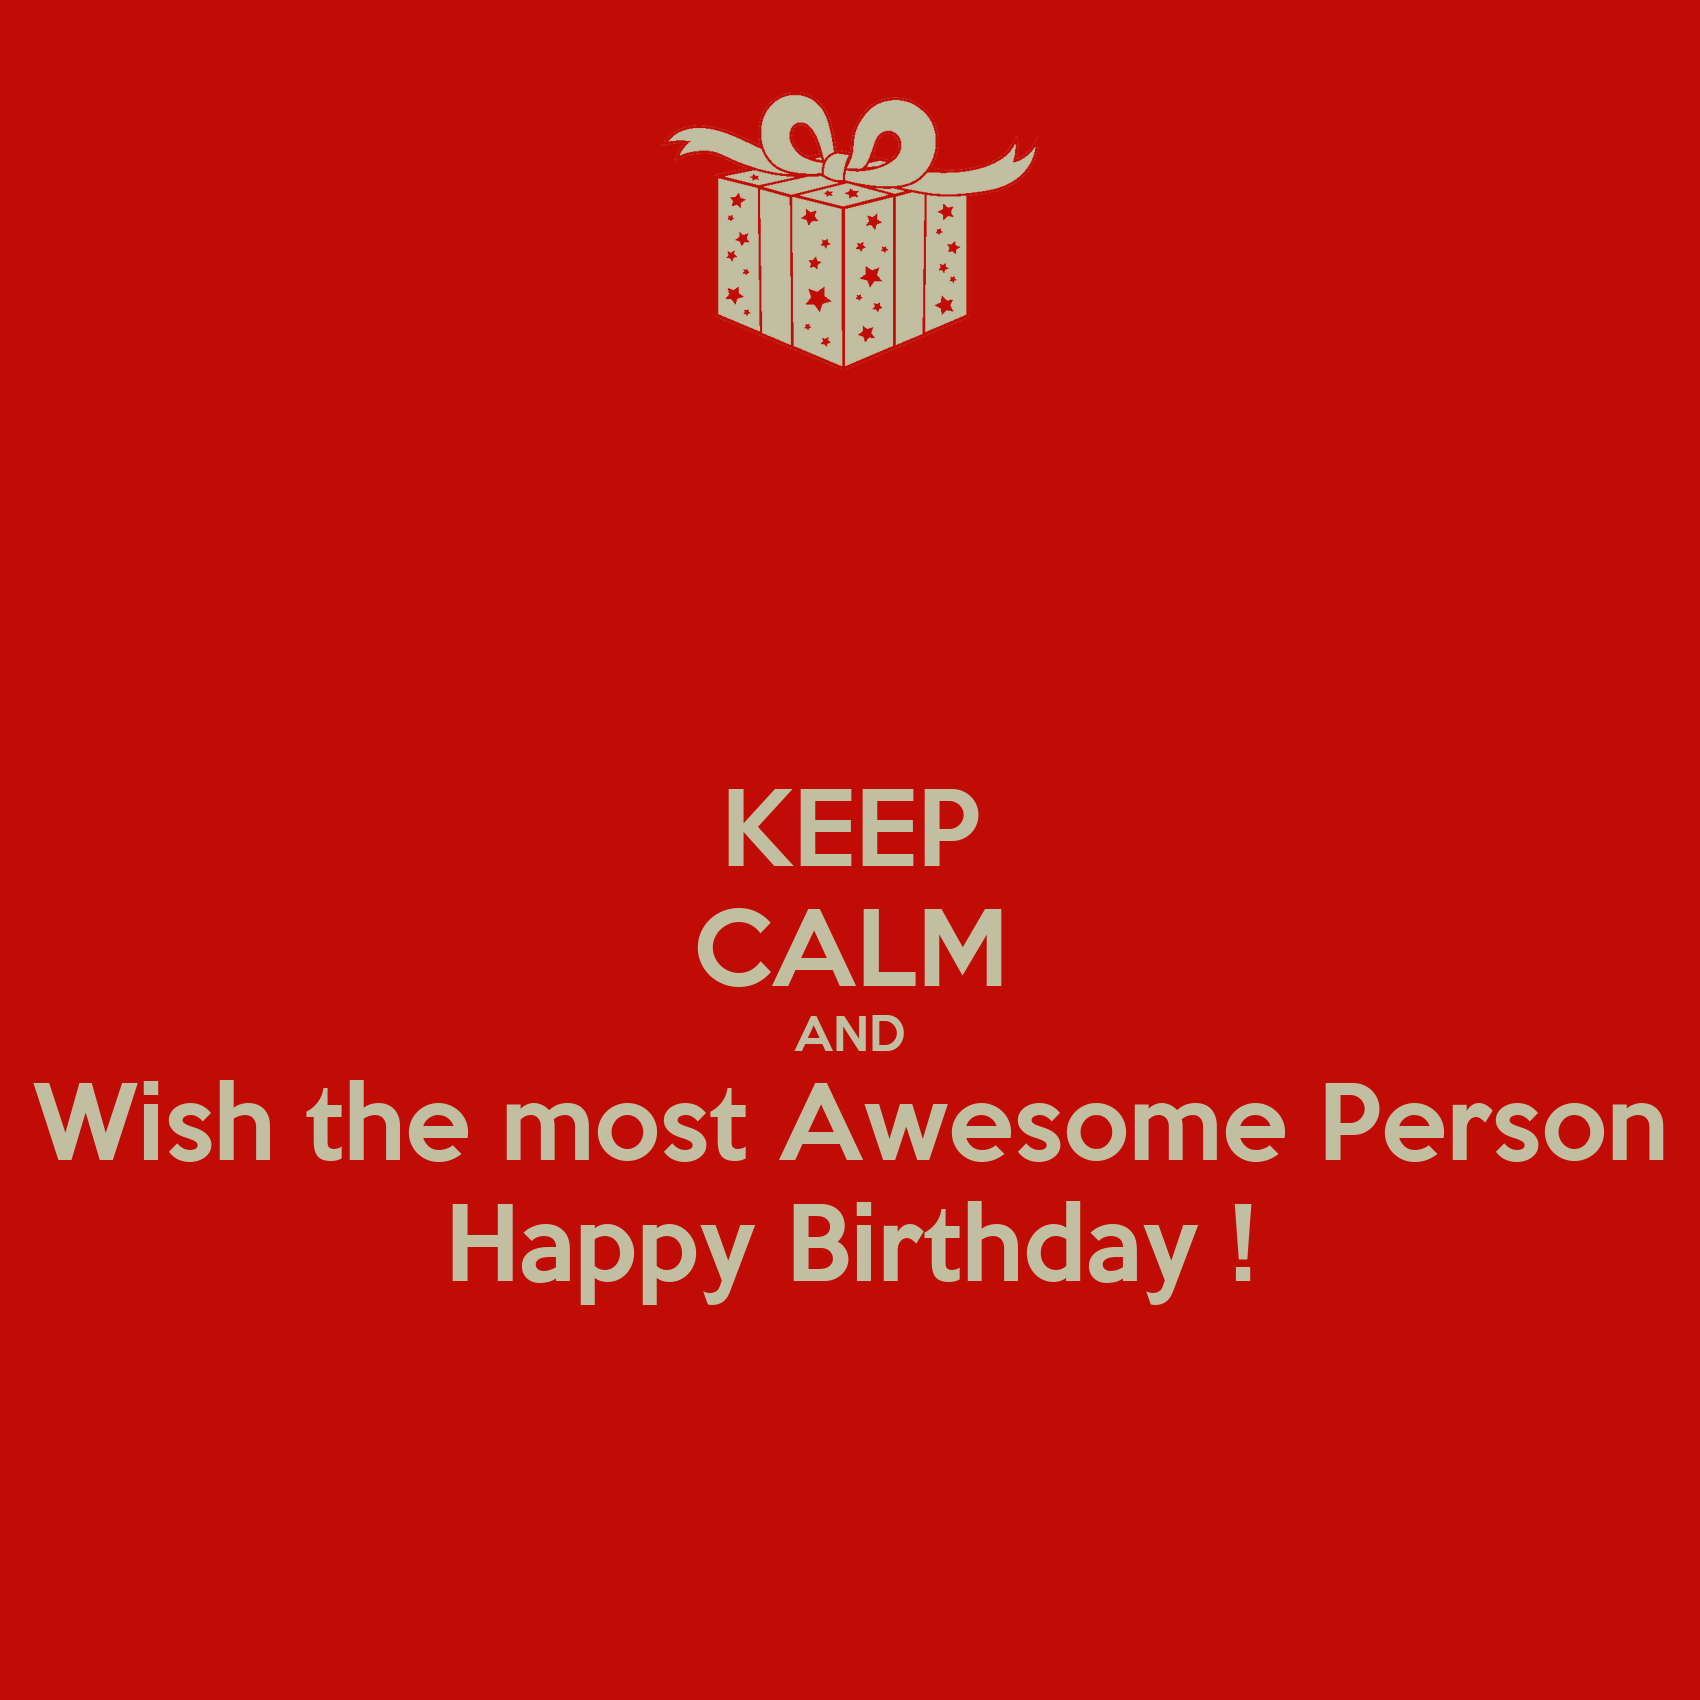 Keep Calm And Wish The Most Awesome Person Happy Birthday Happy Birthday Wishes For Person